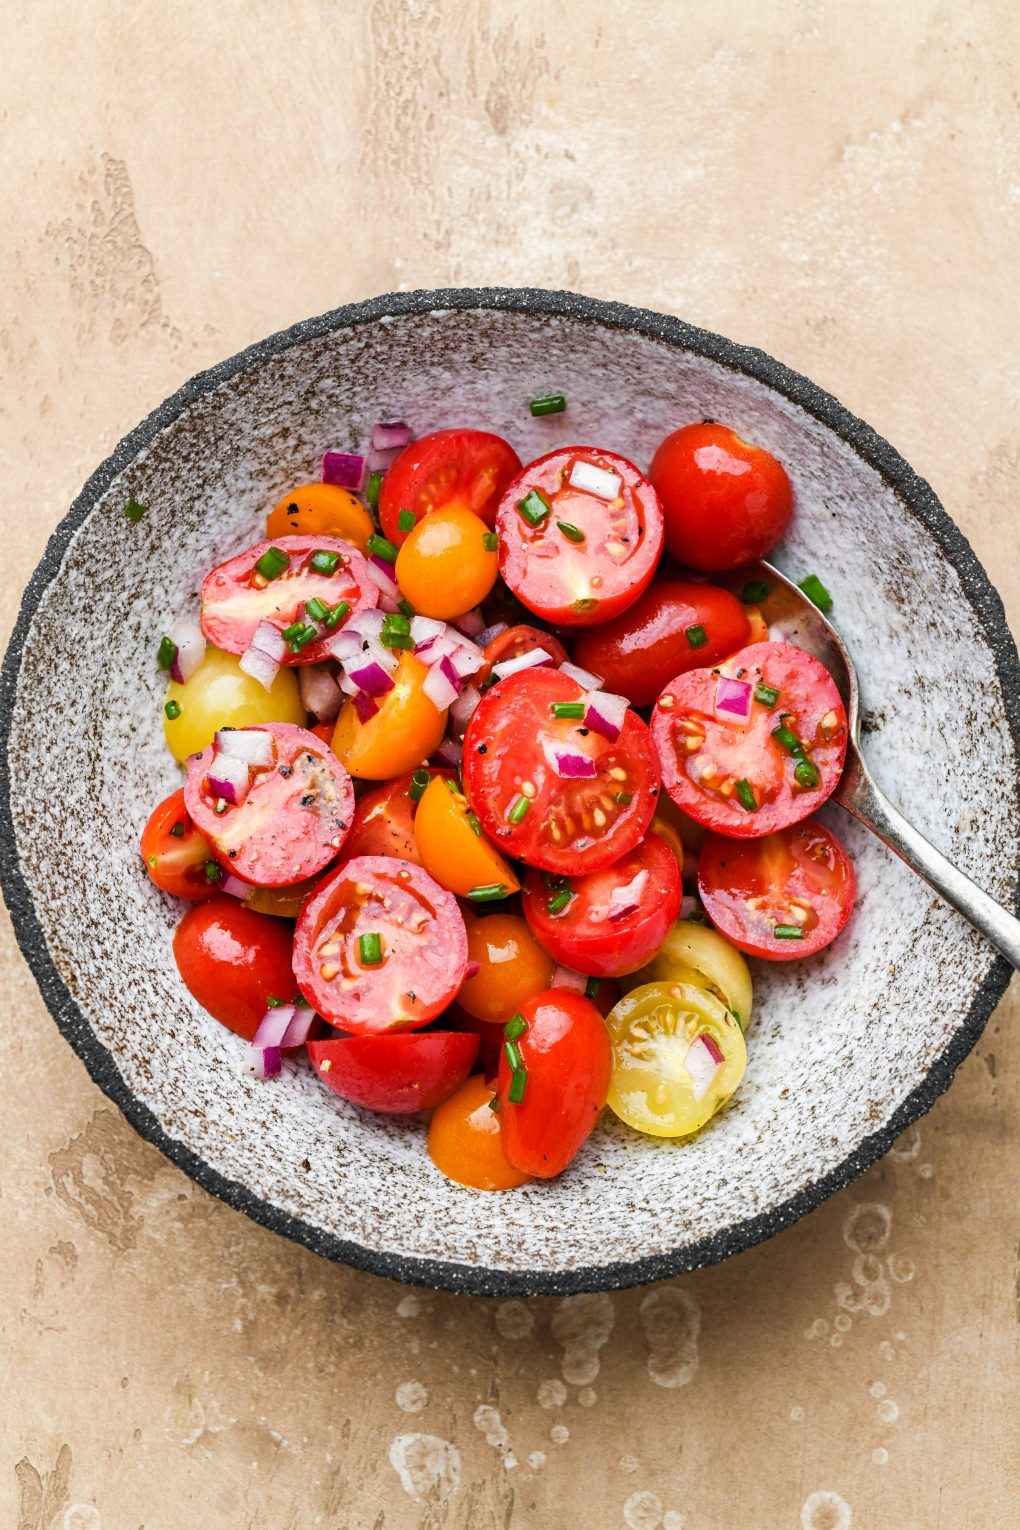 A small textured bowl with the ingredients for the cherry tomato salad garnish after mixing.